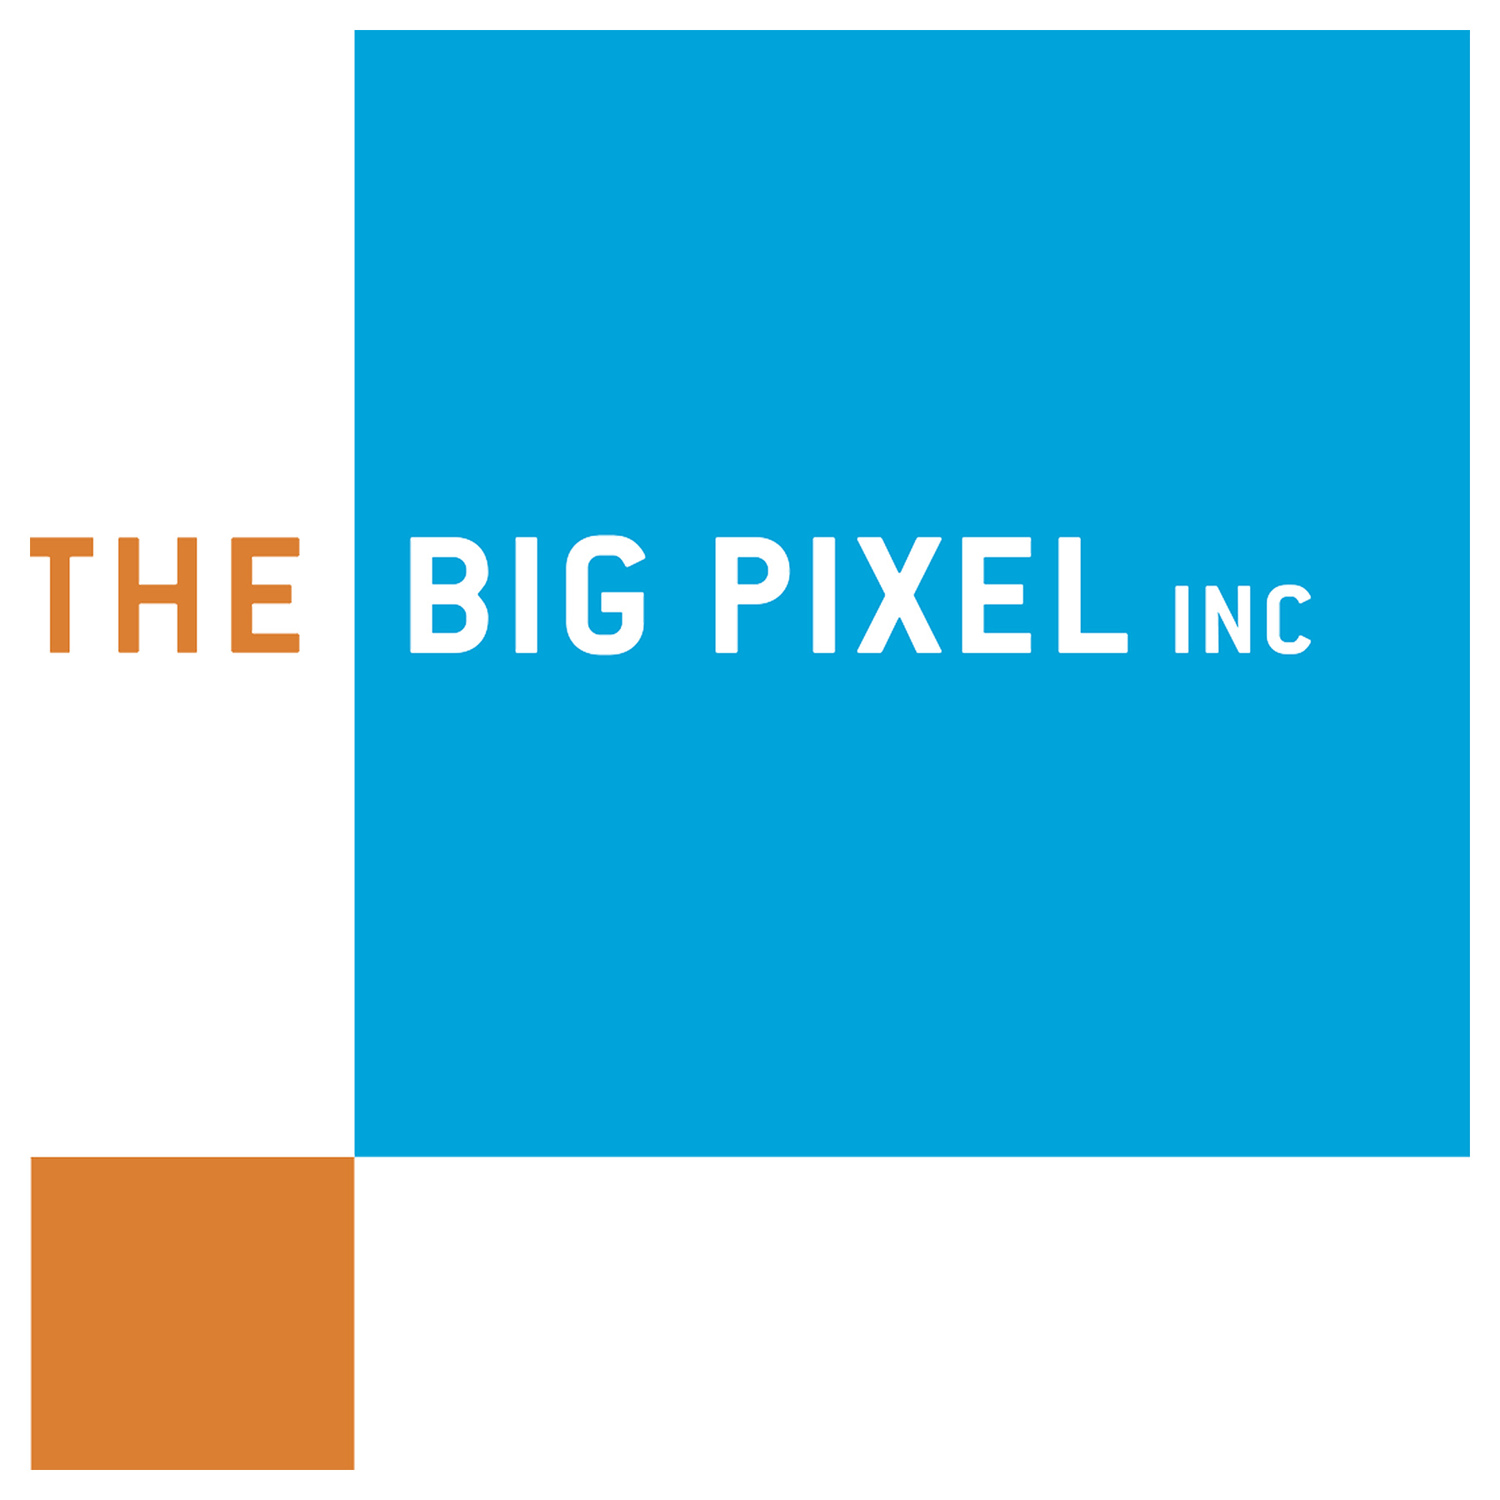 The Big Pixel Inc.